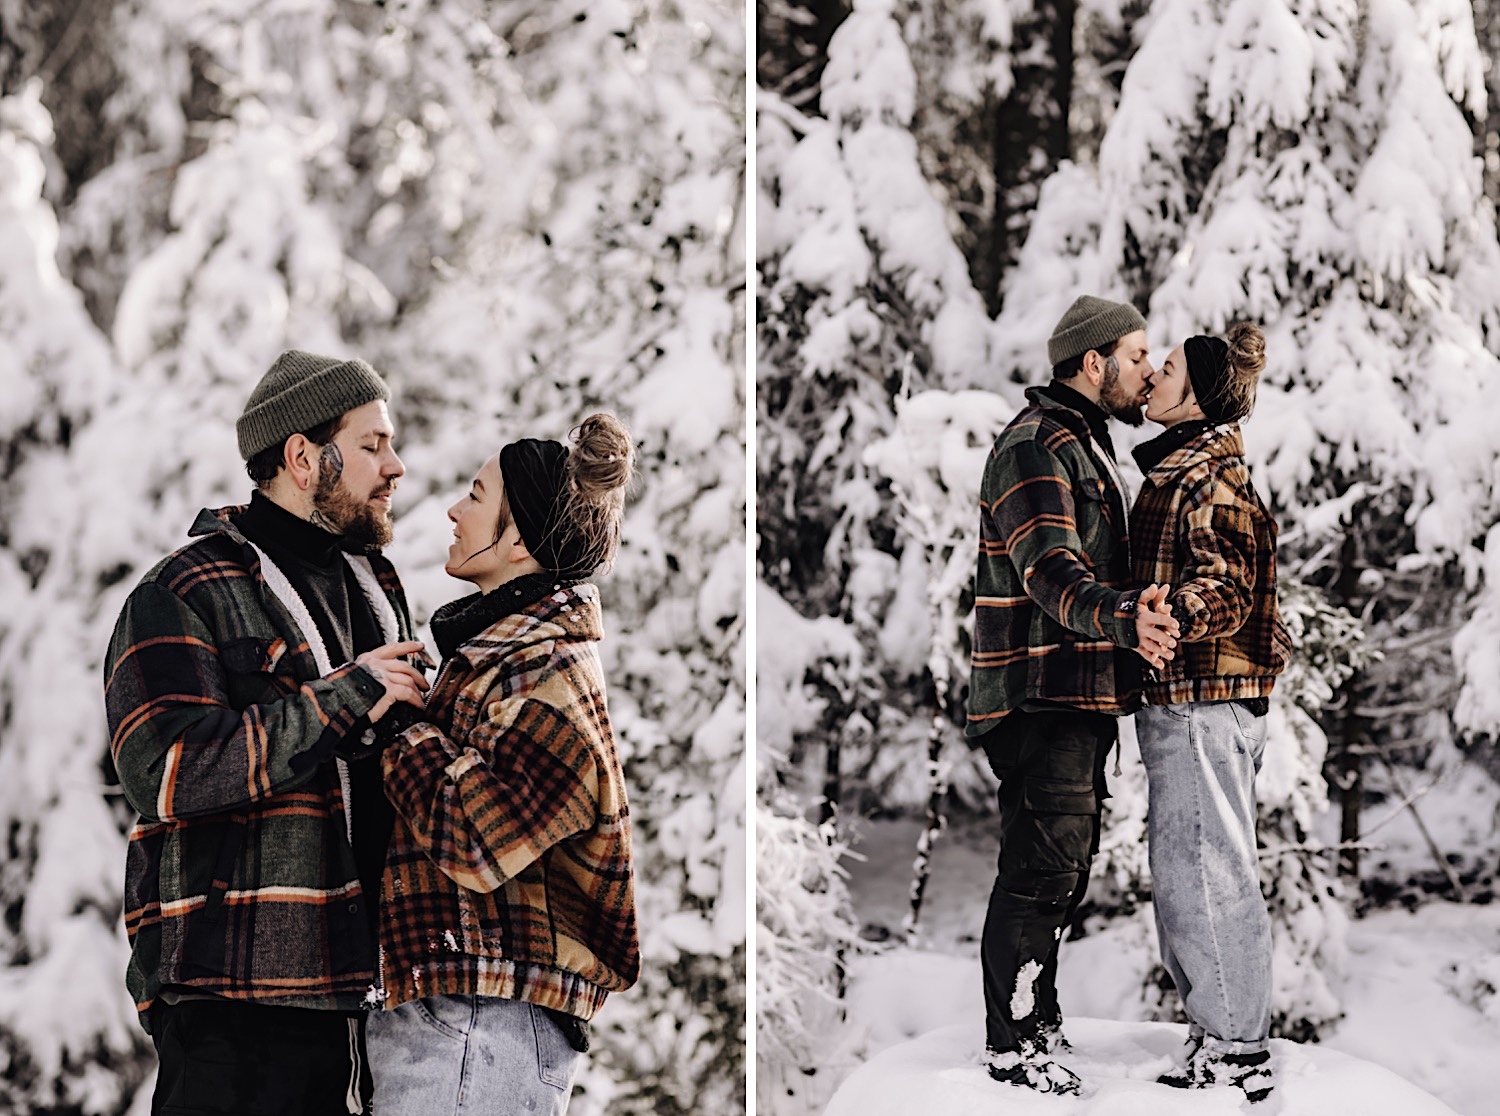 koppelshoot loveshoot engagment verloving